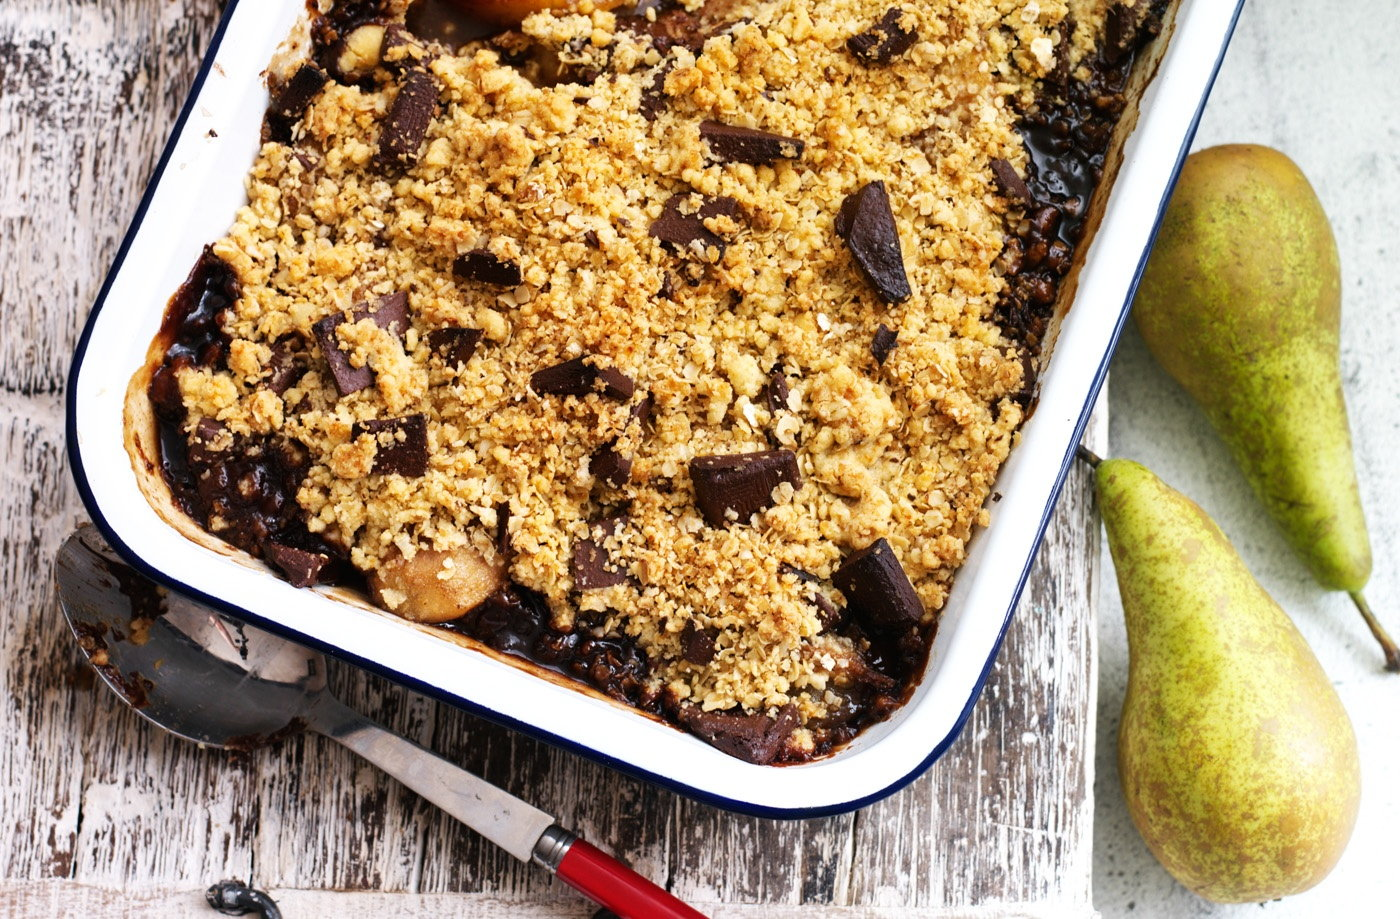 Spiced pear and chocolate crumble recipe